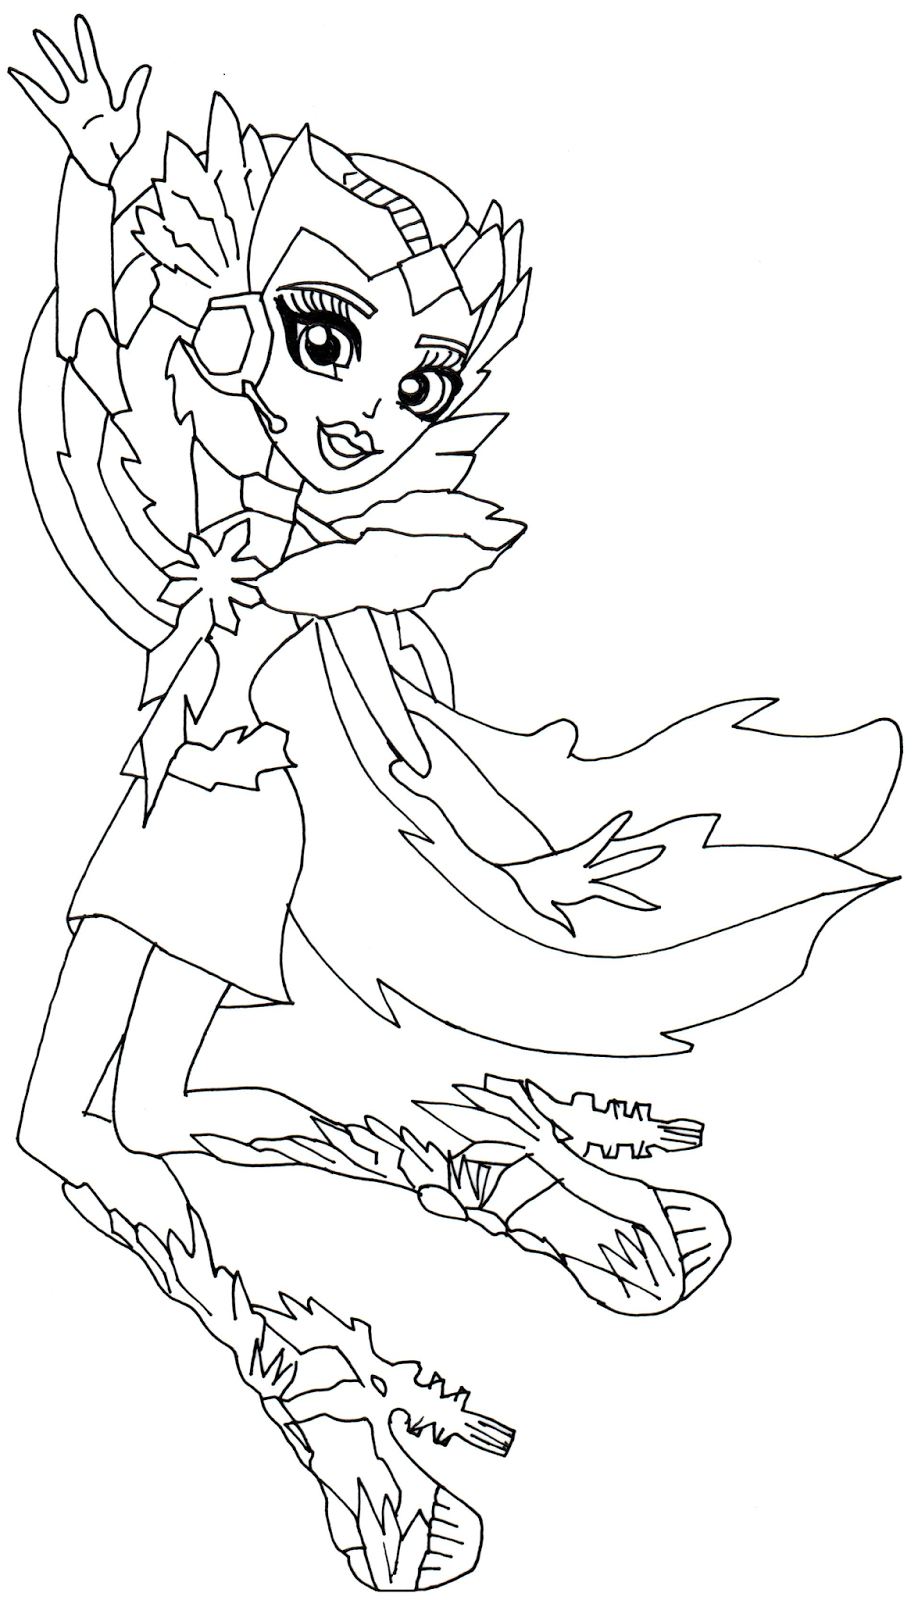 free printable monster high coloring page for astranova in boo york